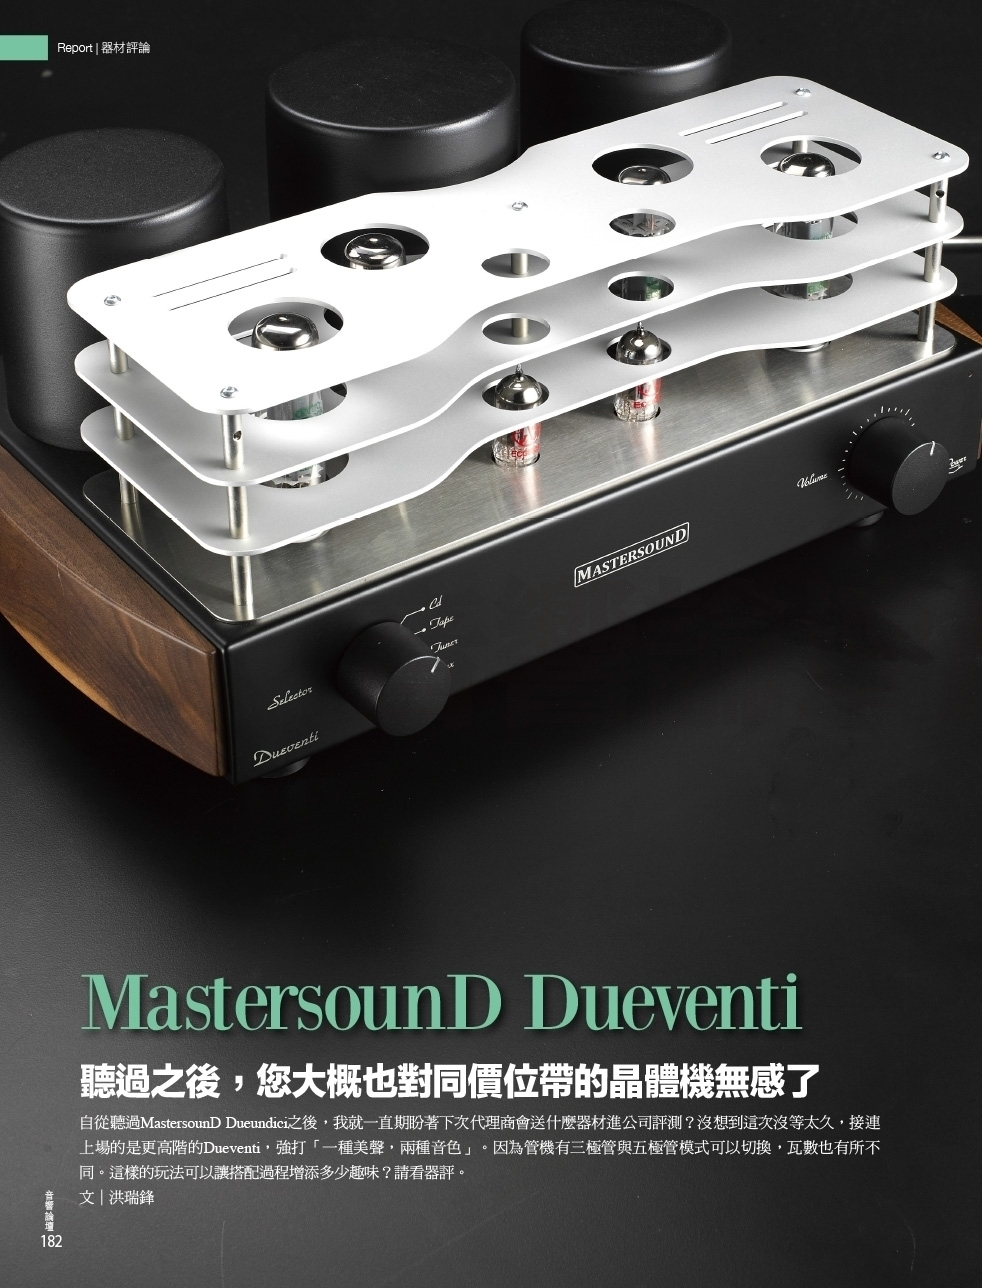 Dueventi - Mastersound